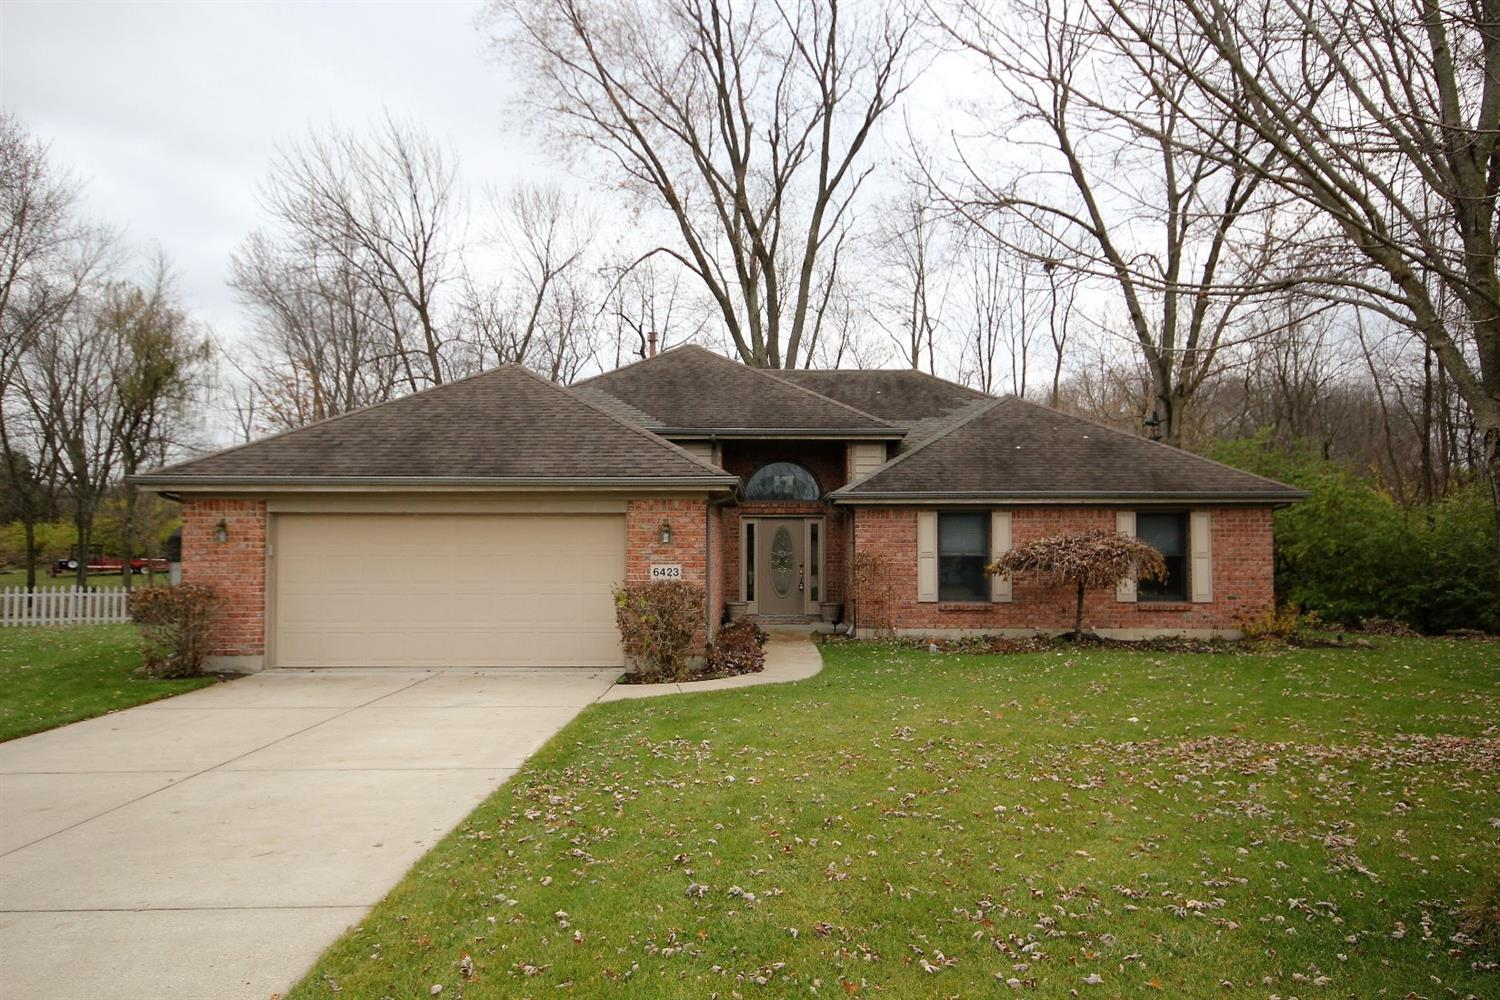 6423 Catkin Ct Wayne Twp. (Warren Co.), OH